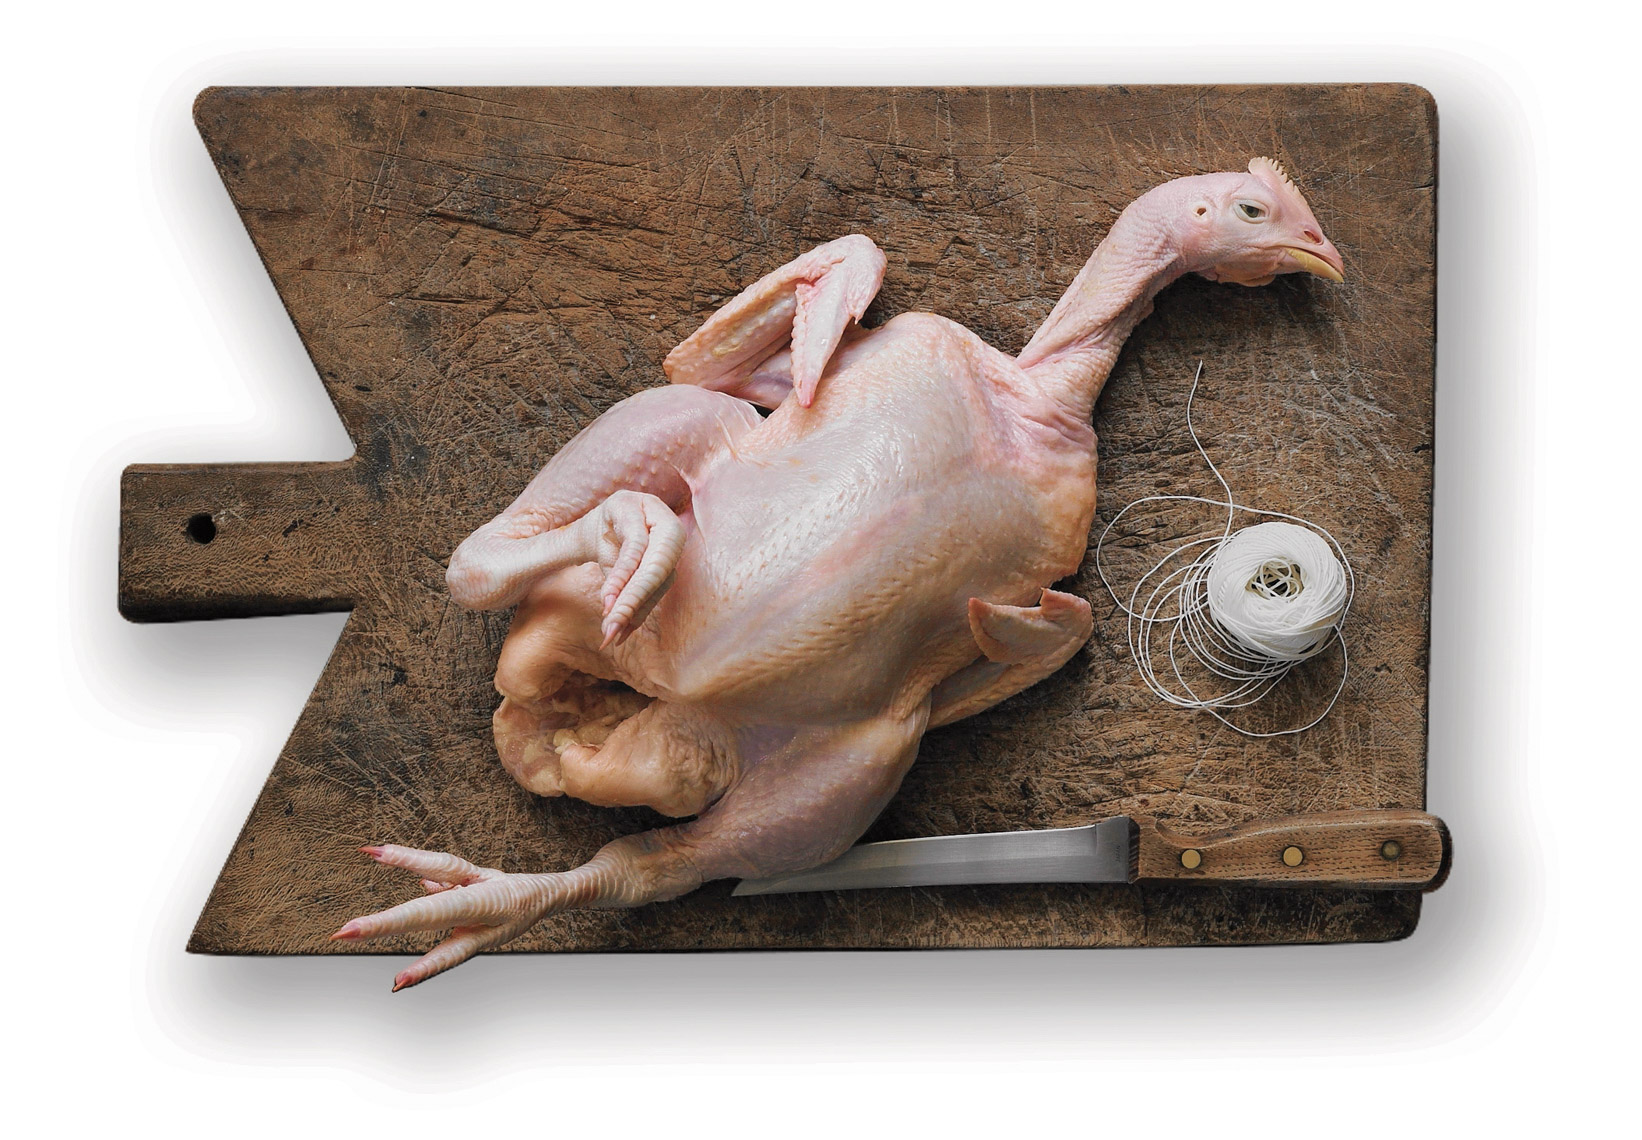 food stylist in Oakland - Whole chicken with head and feet, photographed by Laurie Frankel photographer